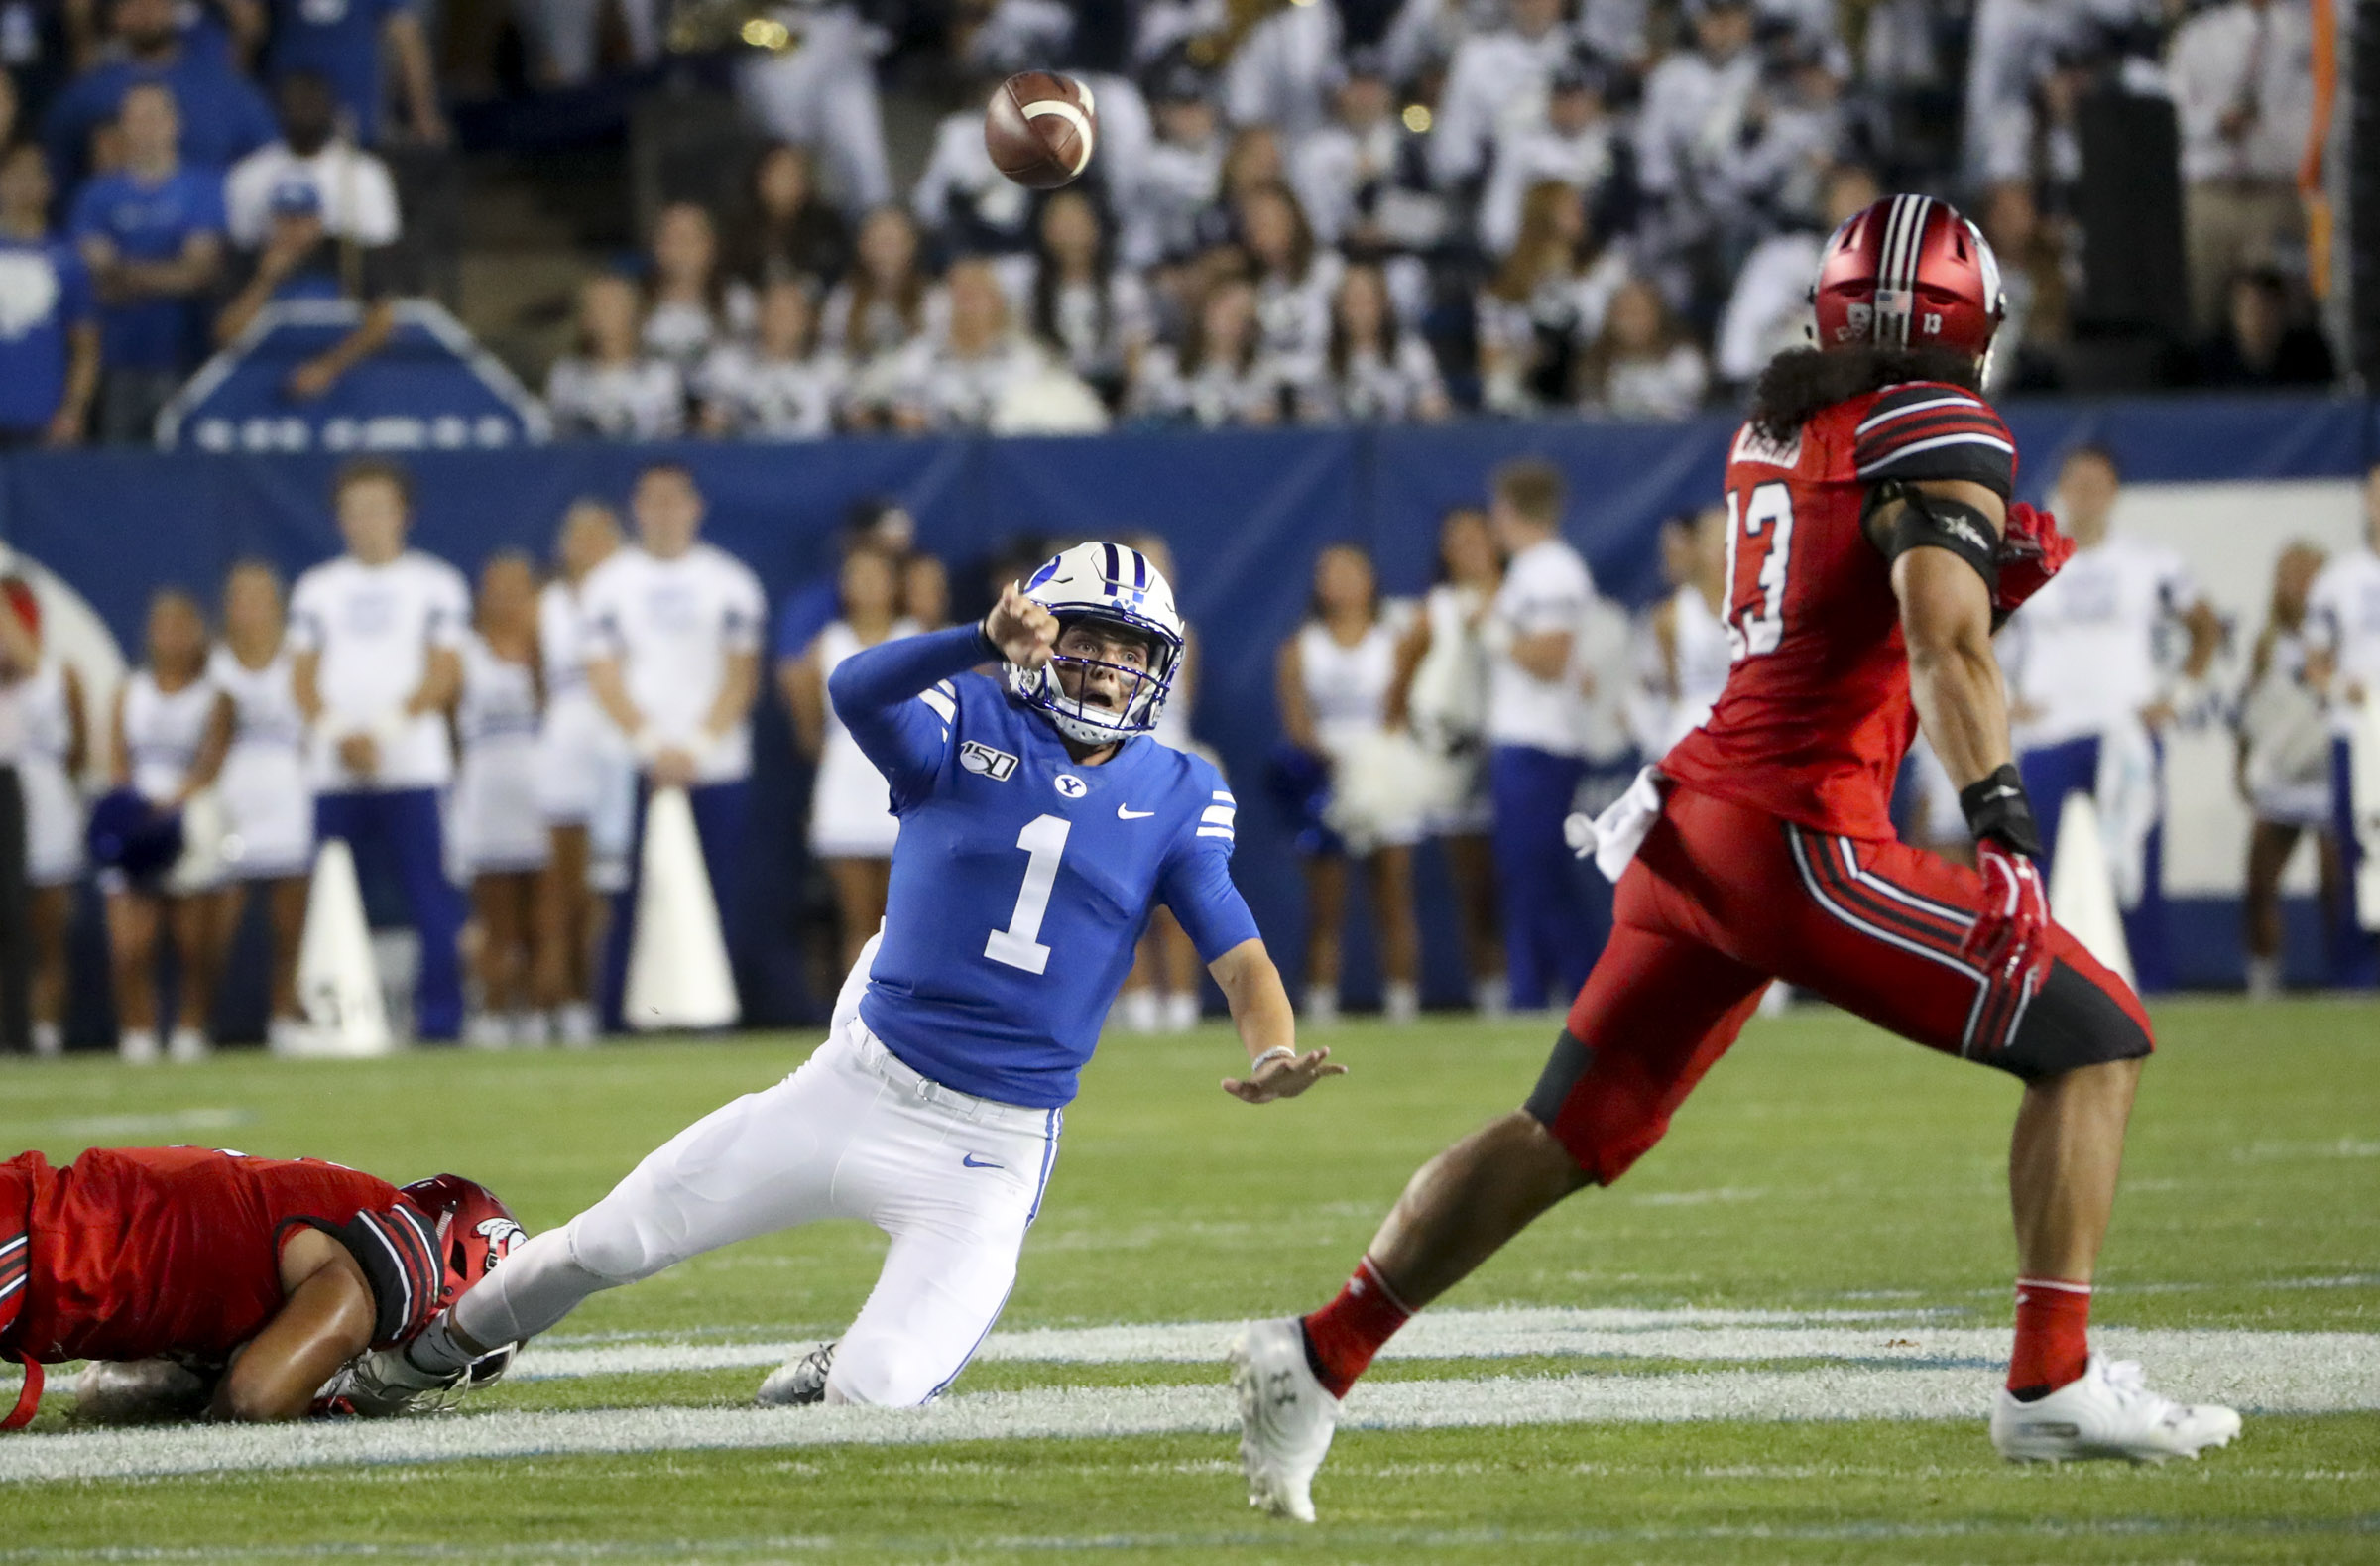 Brigham Young Cougars quarterback Zach Wilson (1) gets dragged down as he tries to throw a pass that is intercepted Utah Utes linebacker Francis Bernard, who ran it back for a touchdown during the University of Utah at BYU football game at LaVell Edwards Stadium in Provo on Thursday, Aug. 29, 2019